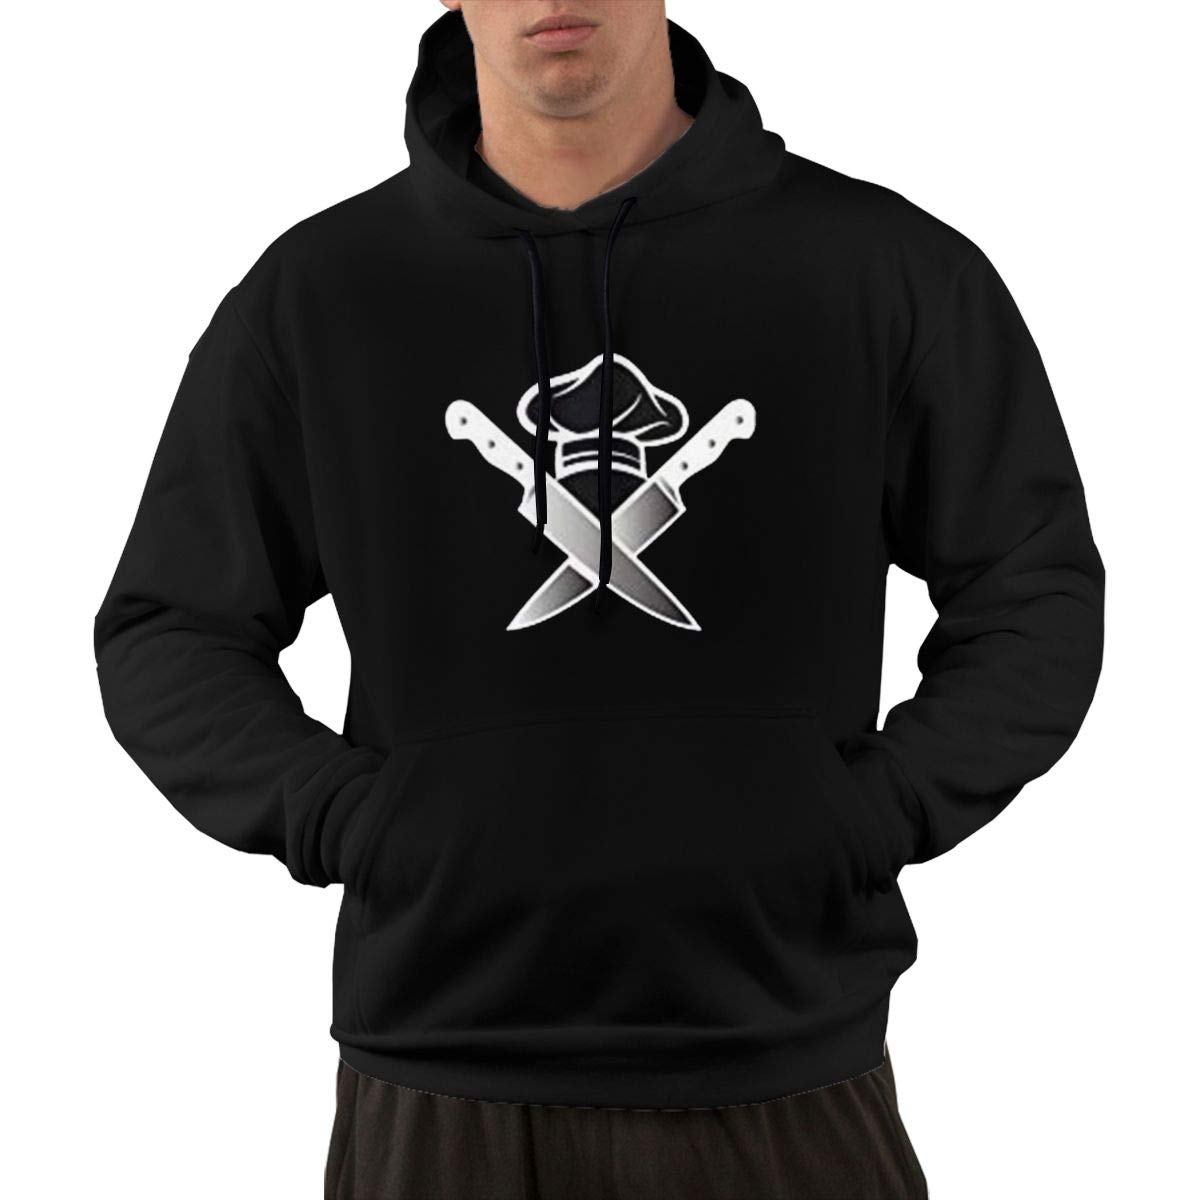 Man's XL Hoodie Running Hoodies for Boys with Chef Hat Knives Graphic Black by Monicame